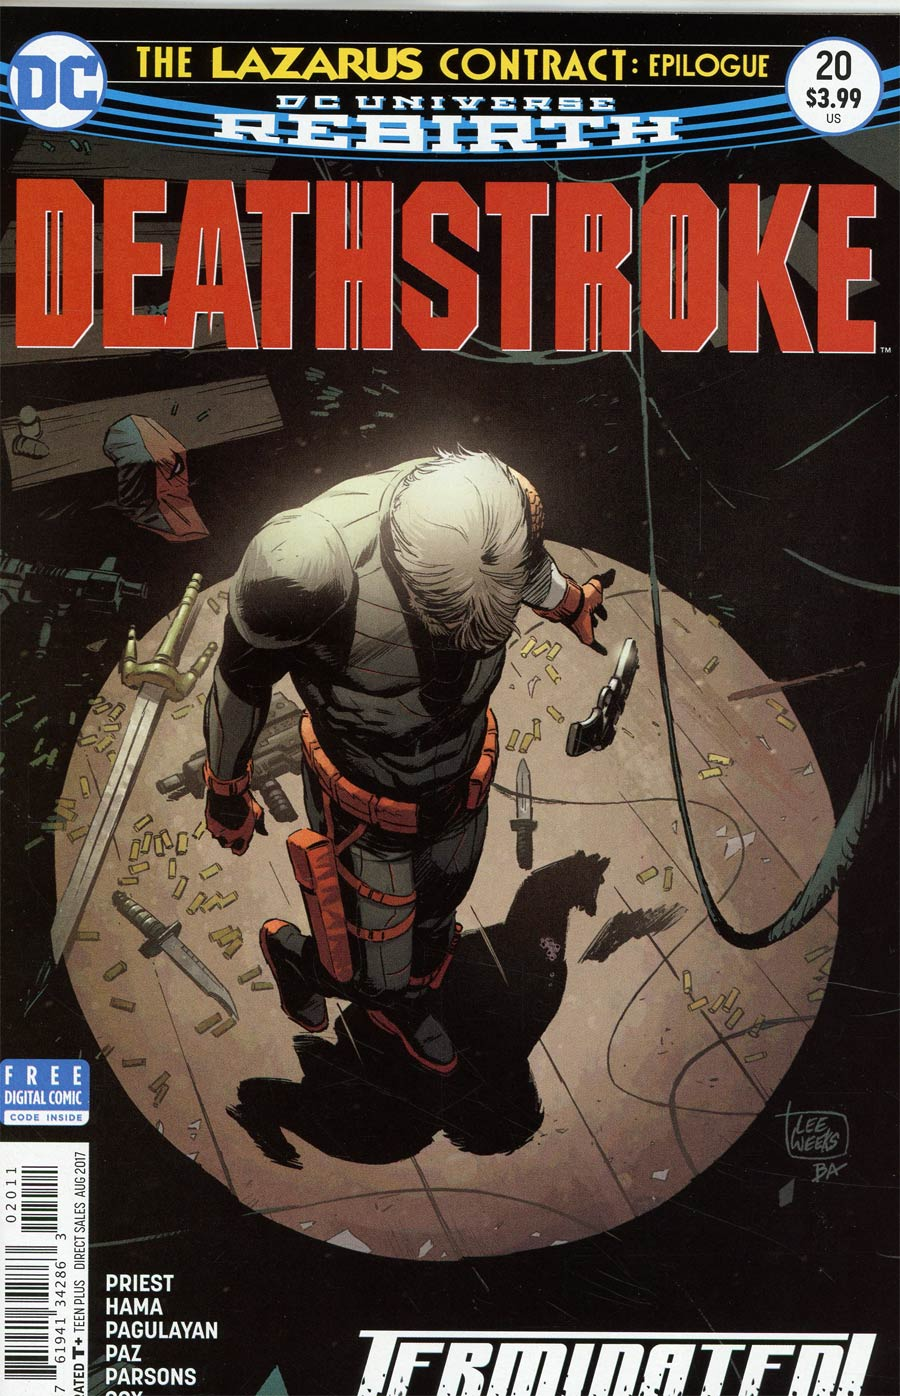 Deathstroke Vol 4 #20 Cover A Regular Lee Weeks Cover (Lazarus Contract Epilogue)